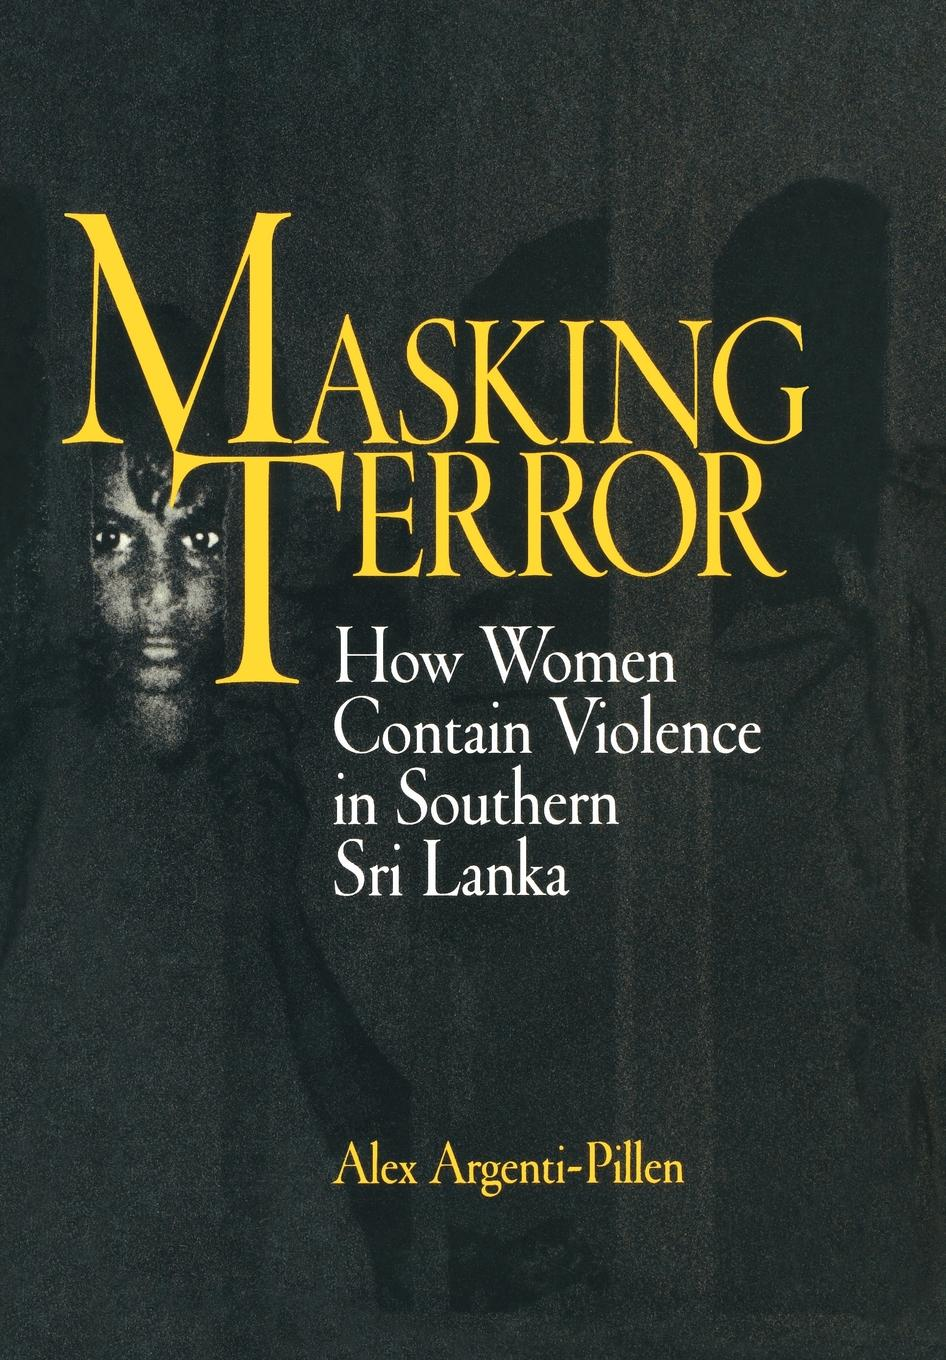 Masking Terror How Women Contain Violence in Southern Sri Lanka